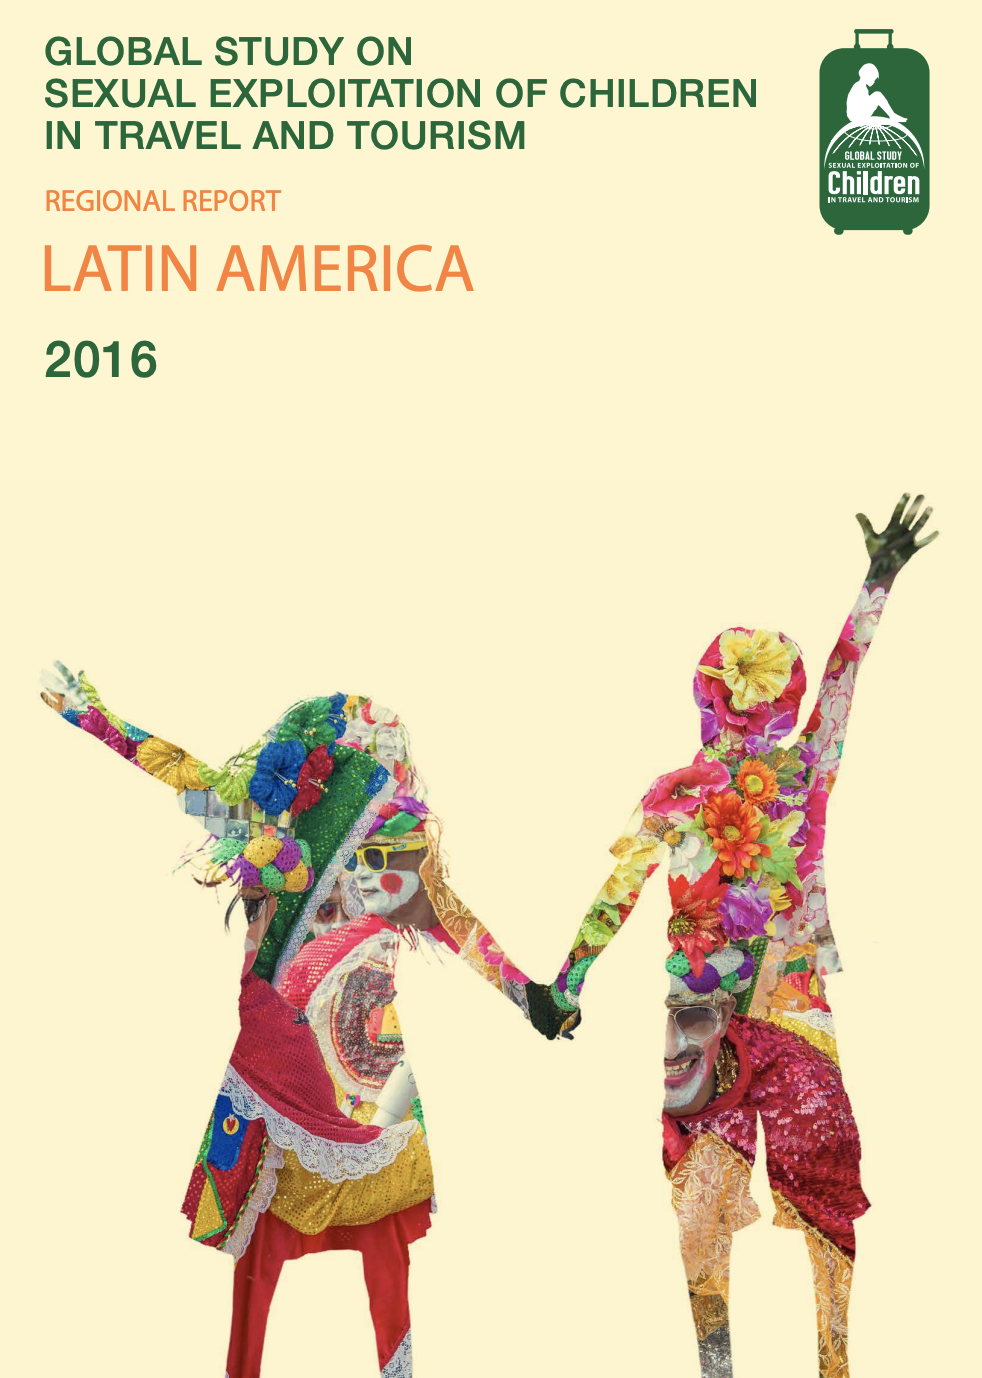 Global Study on Sexual Exploitation of Children in Travel and Tourism – Latin America